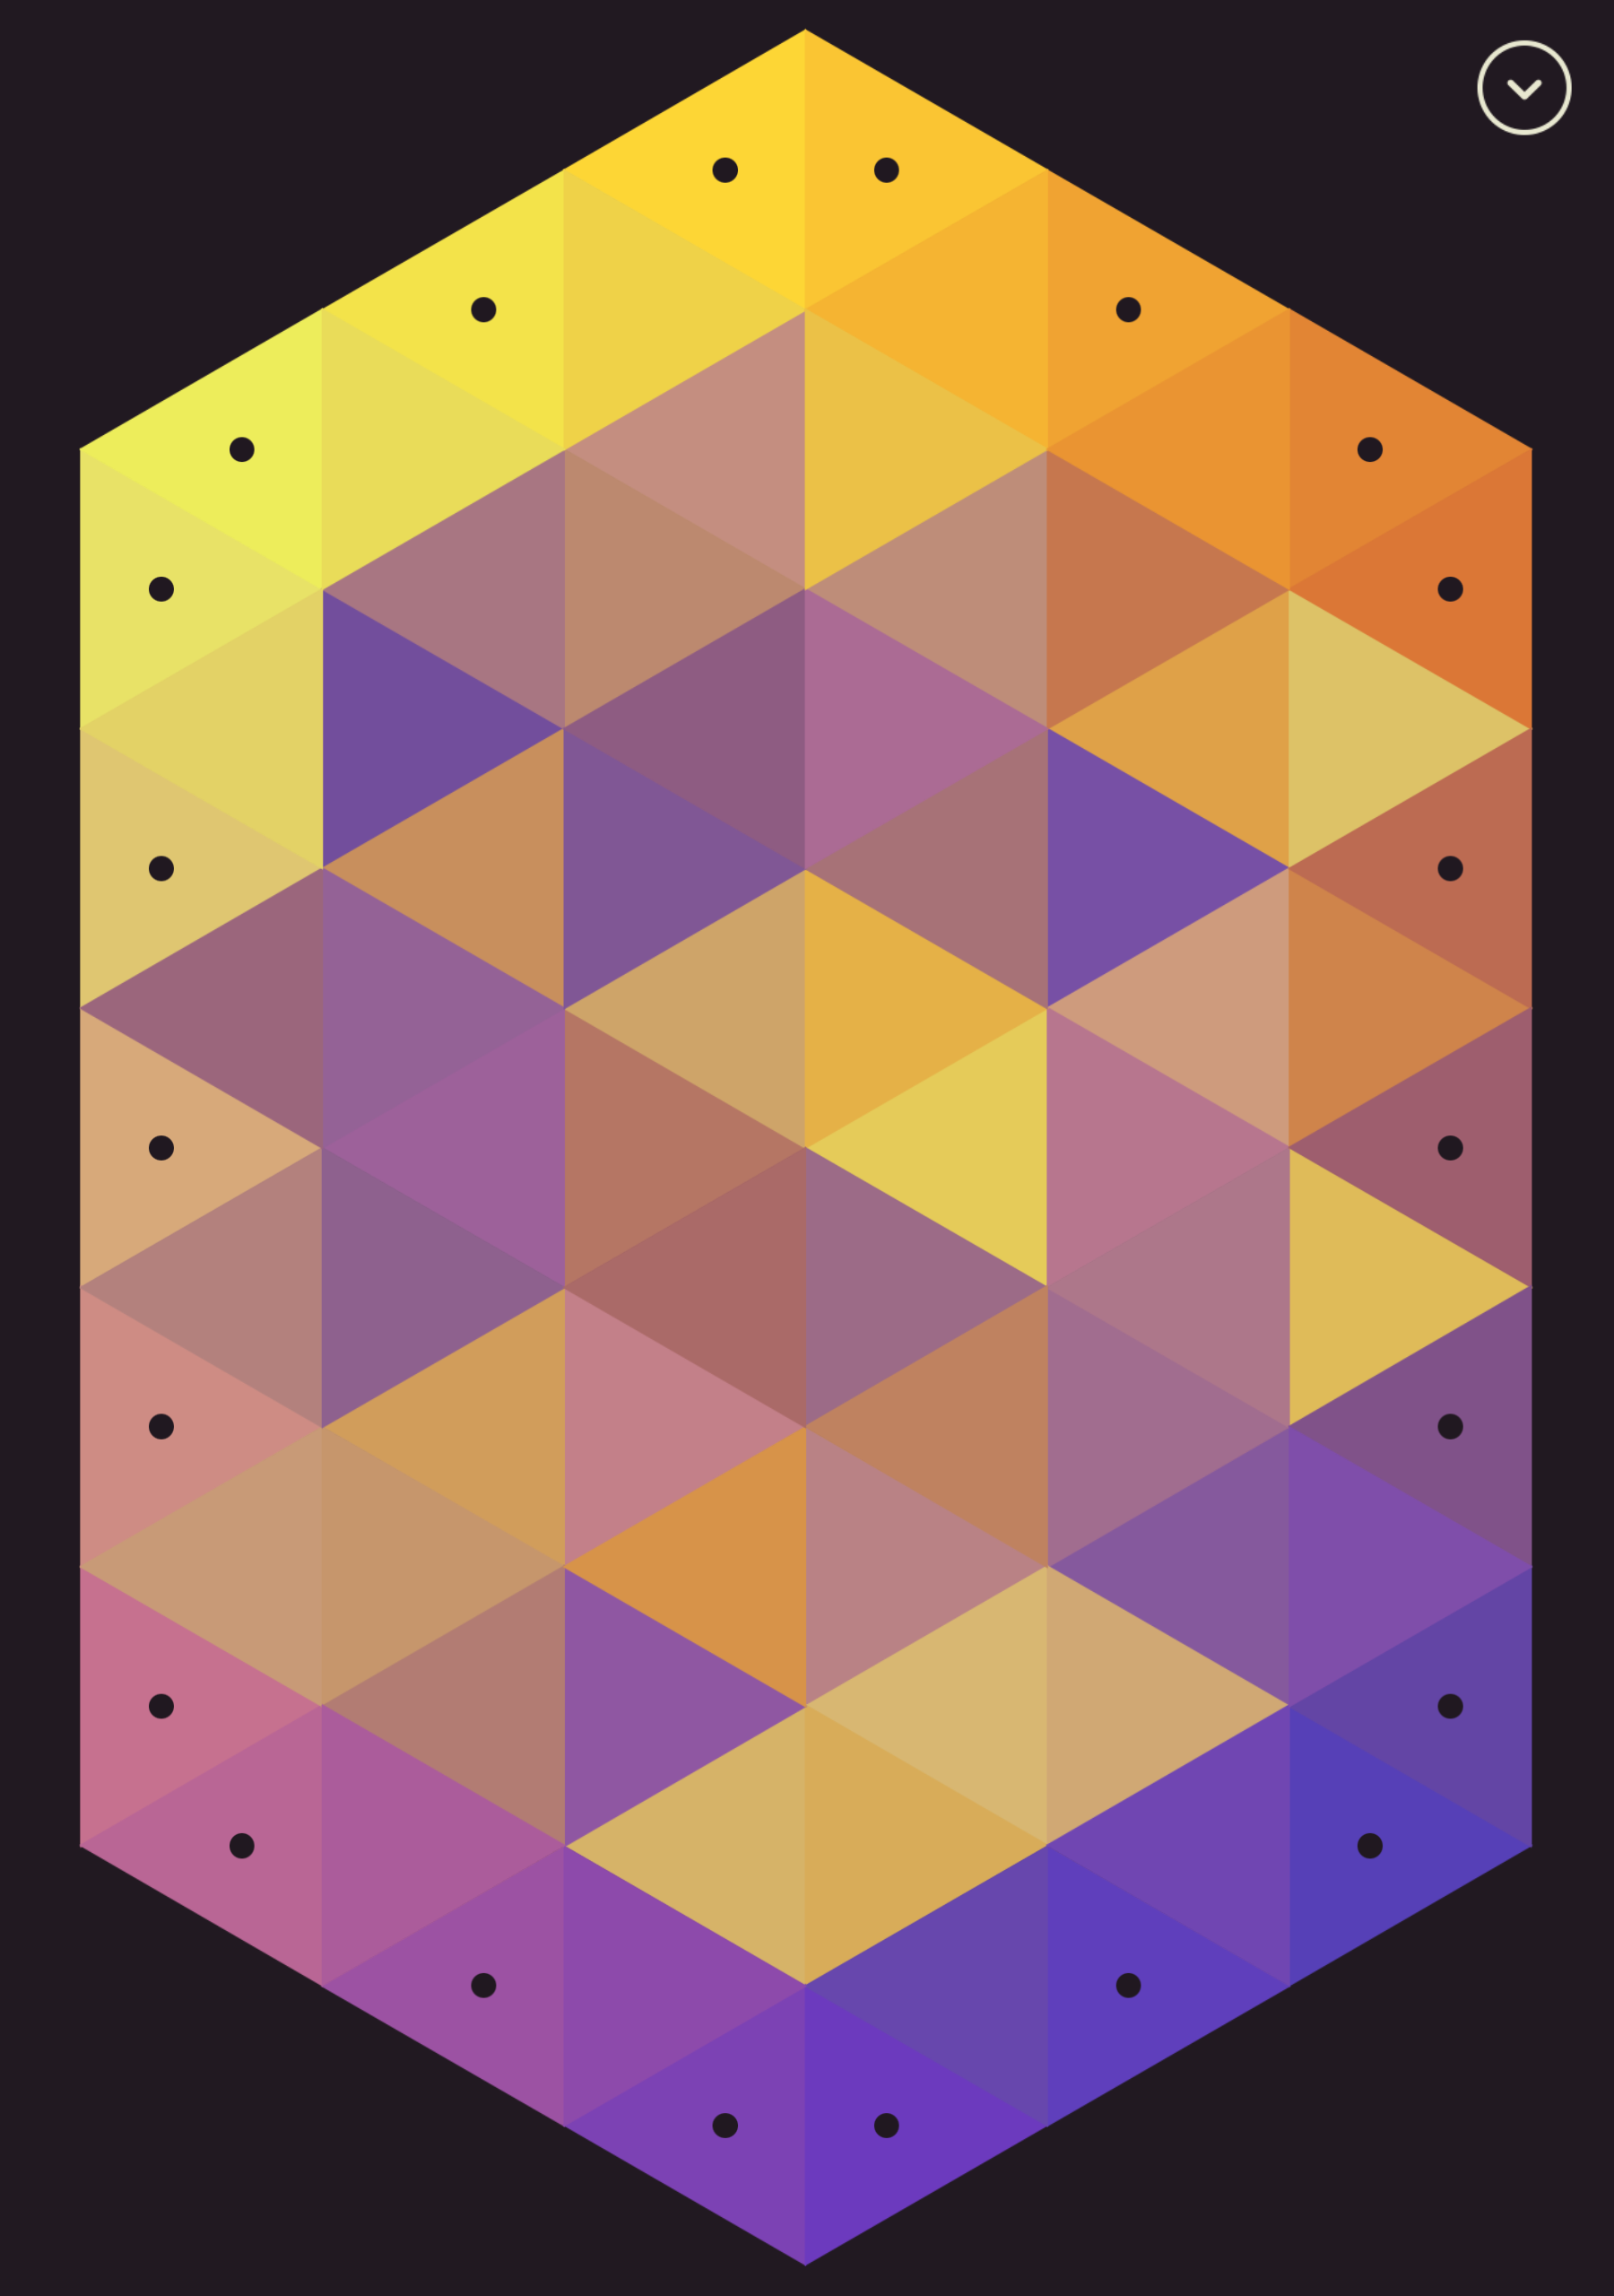 A grid of different coloured triangles